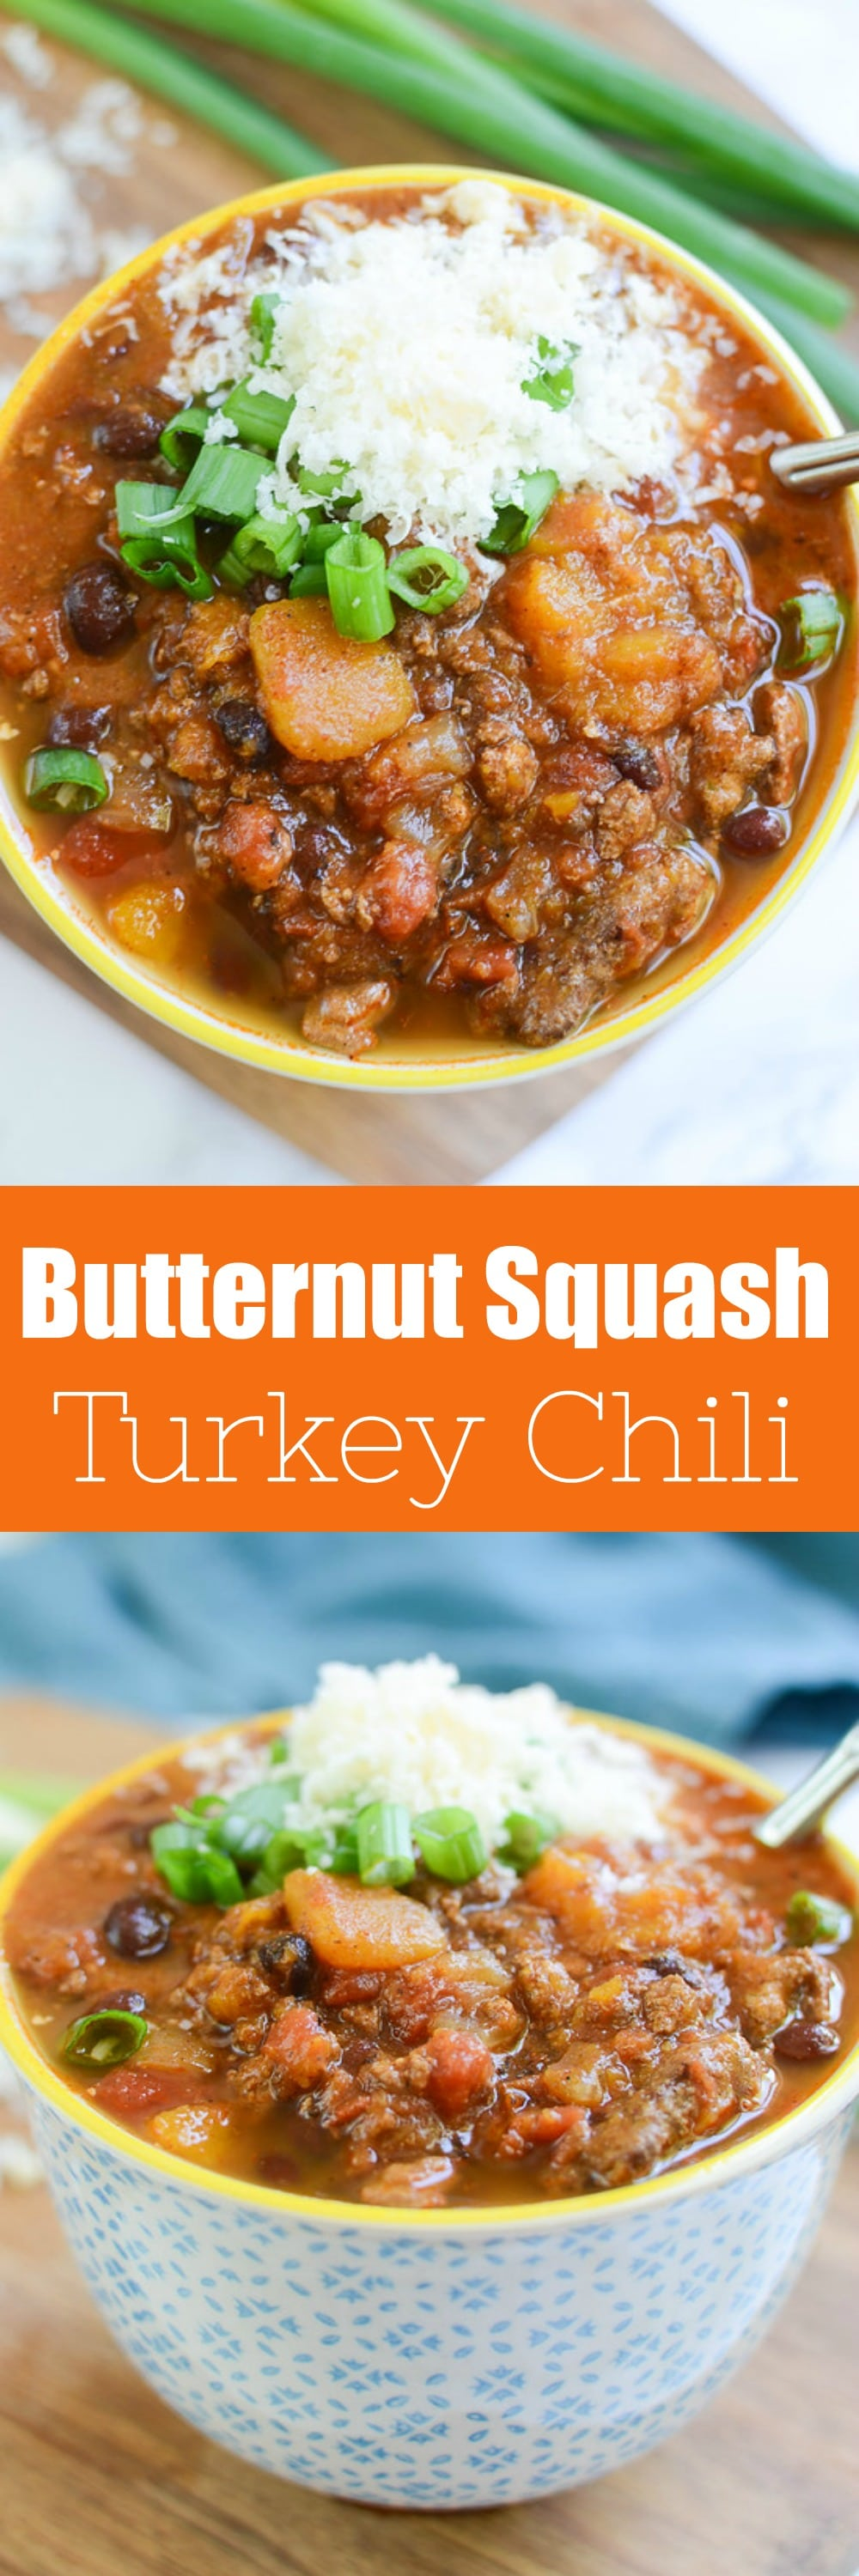 Butternut Squash and Turkey Chili - serious comfort food! Turkey chili filled with butternut squash, black beans, tomatoes, and lots of spices!